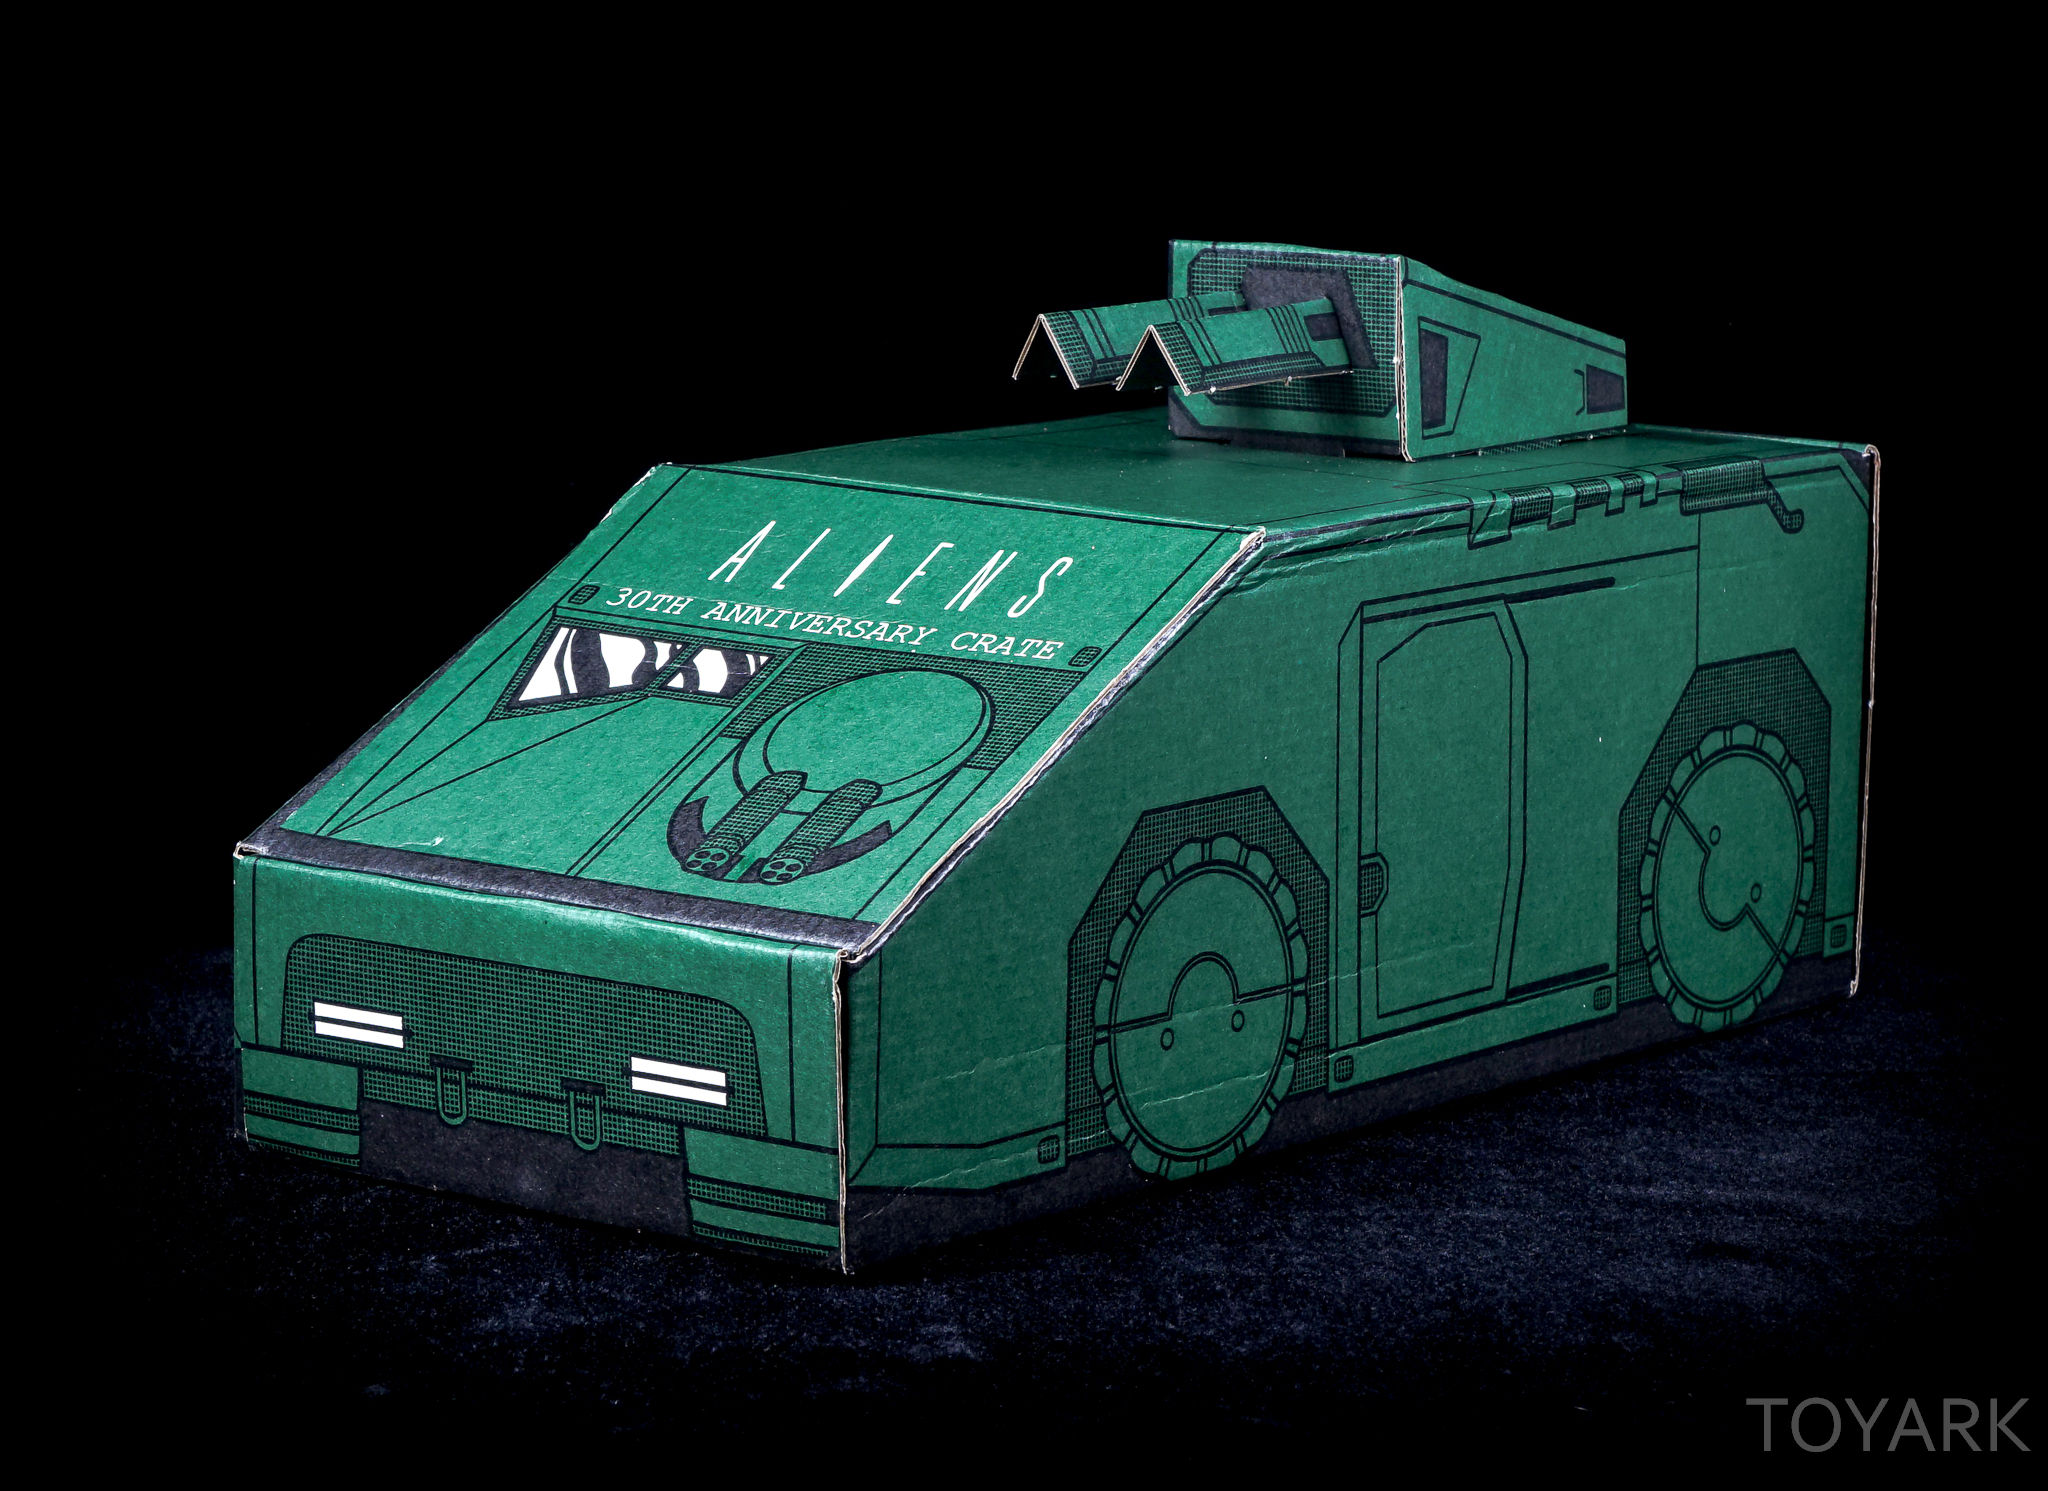 http://news.toyark.com/wp-content/uploads/sites/4/2016/05/Aliens-30th-Anniversary-Lootcrate-010.jpg